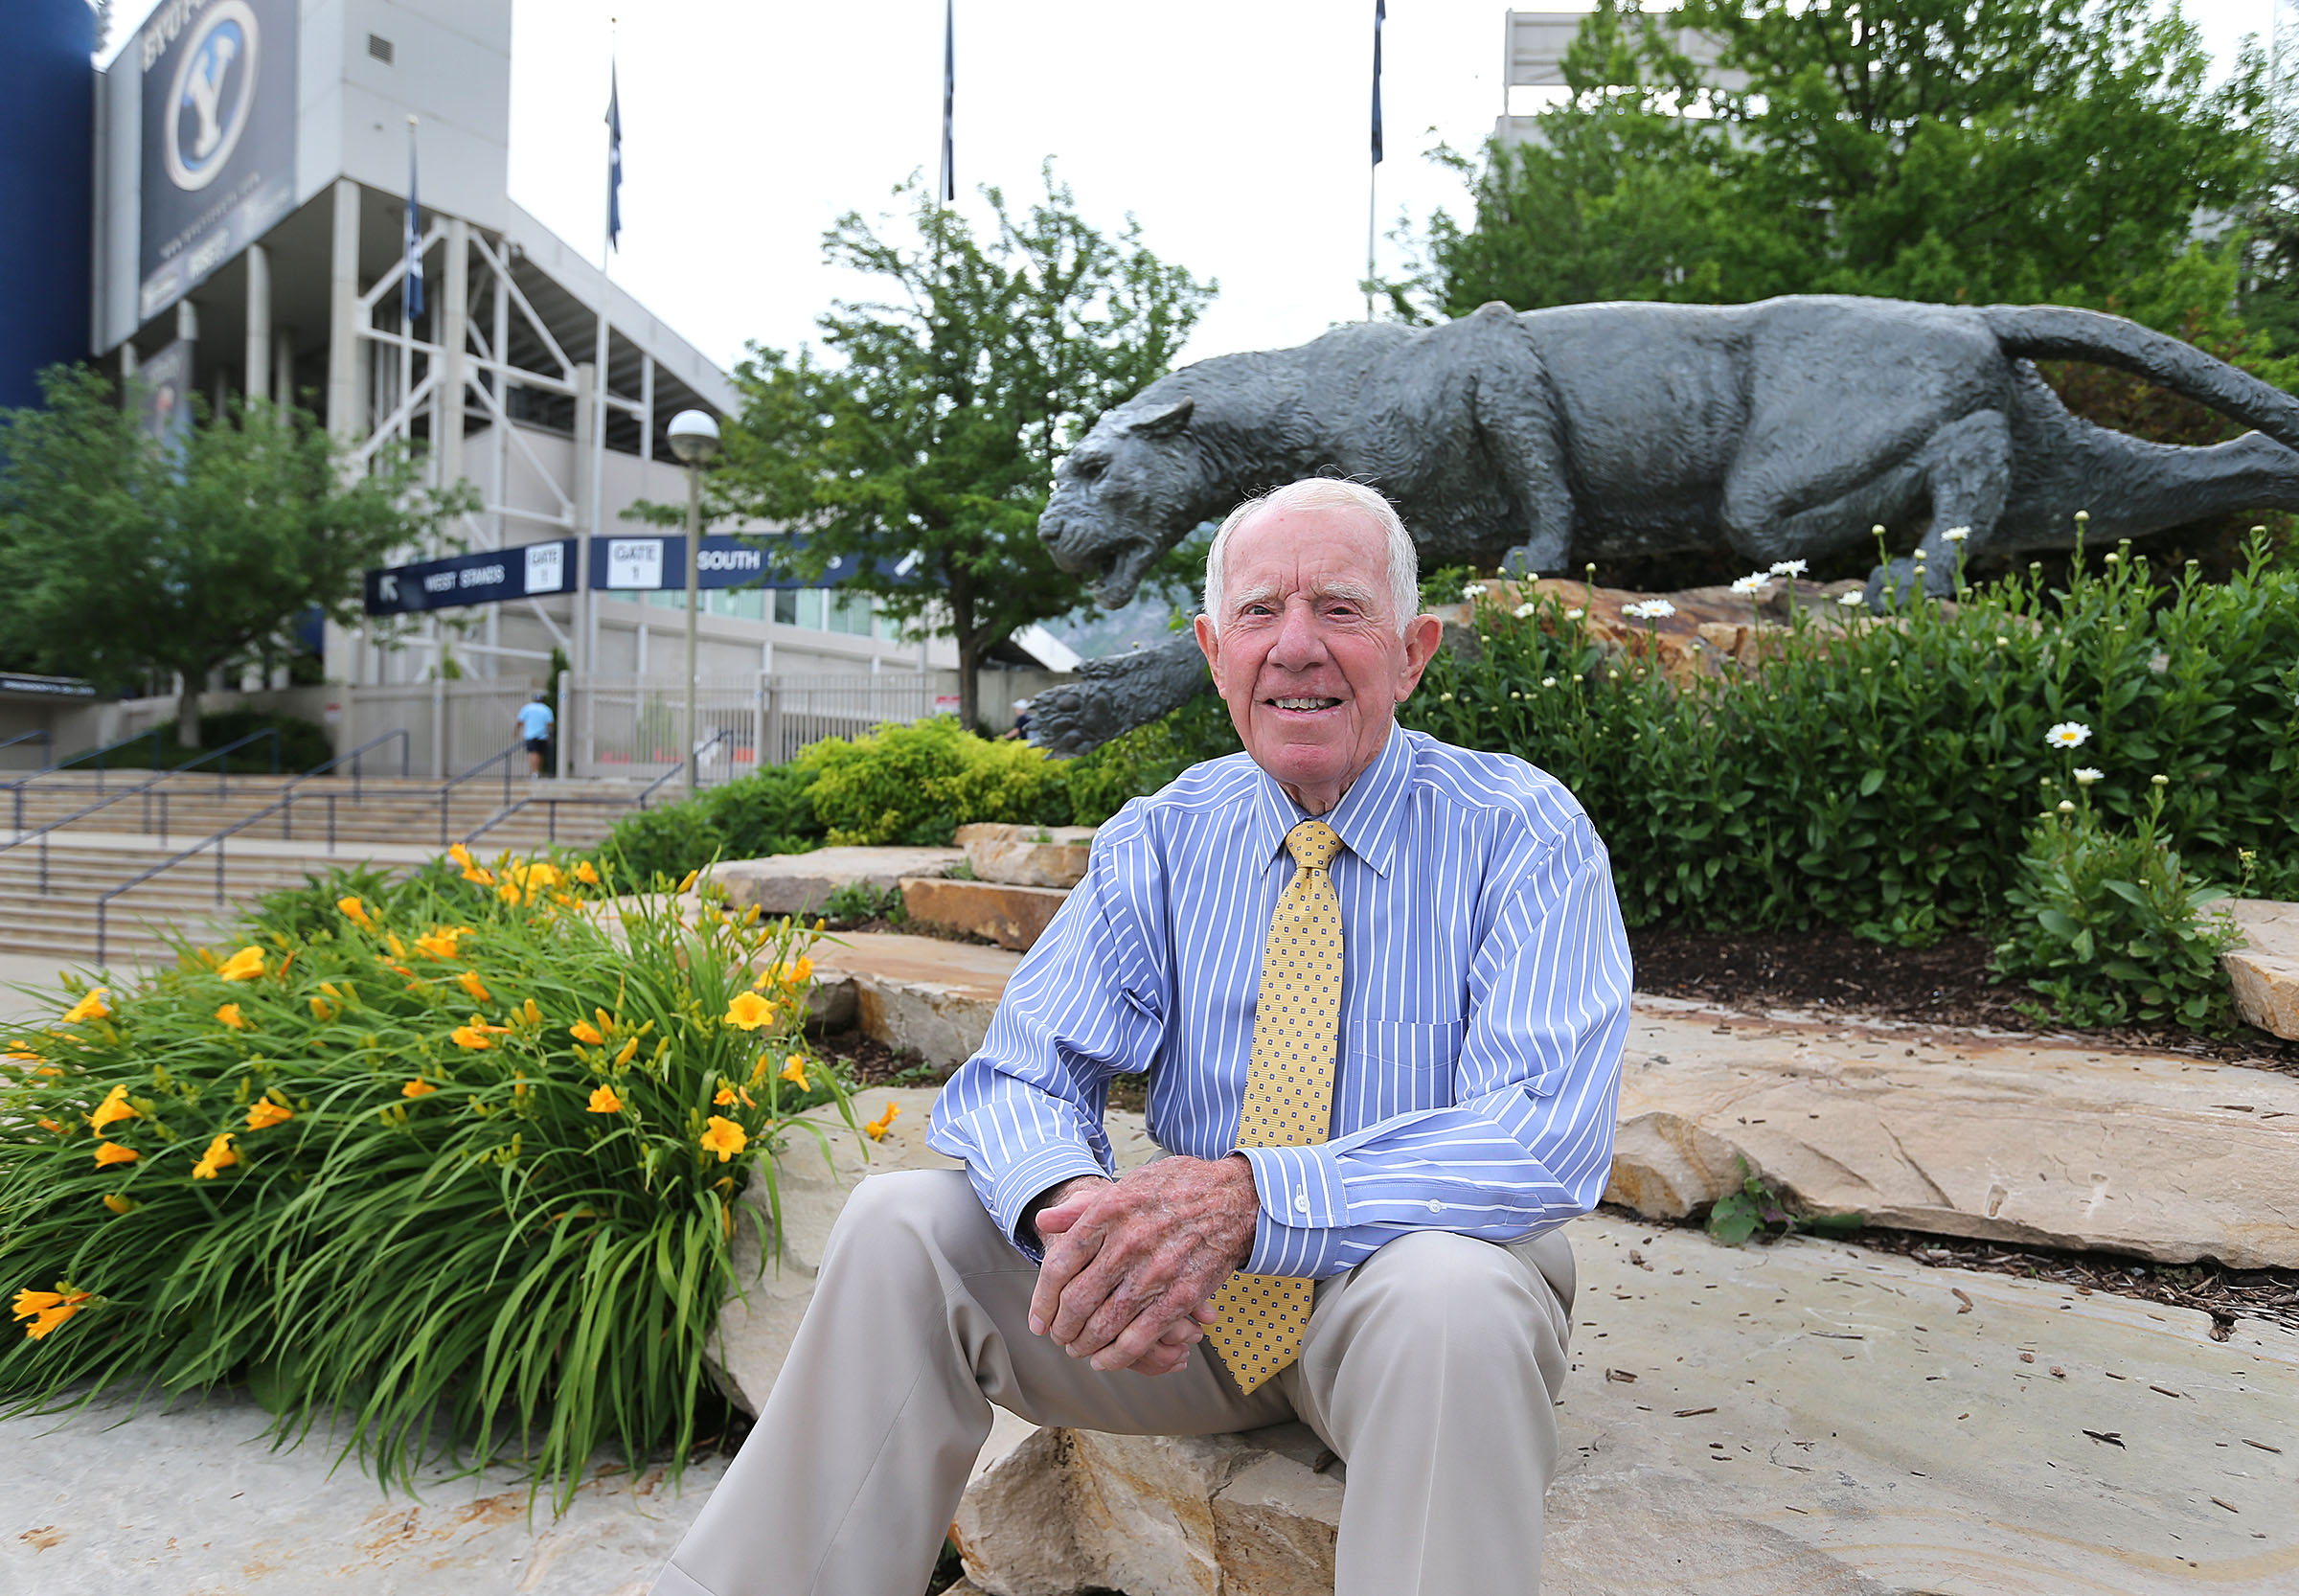 Former BYU Athletic Director Glen Tuckett, June 10, 2015, in Provo. Tuckett died Tuesday, Oct. 26, 2021, at the age of 93.